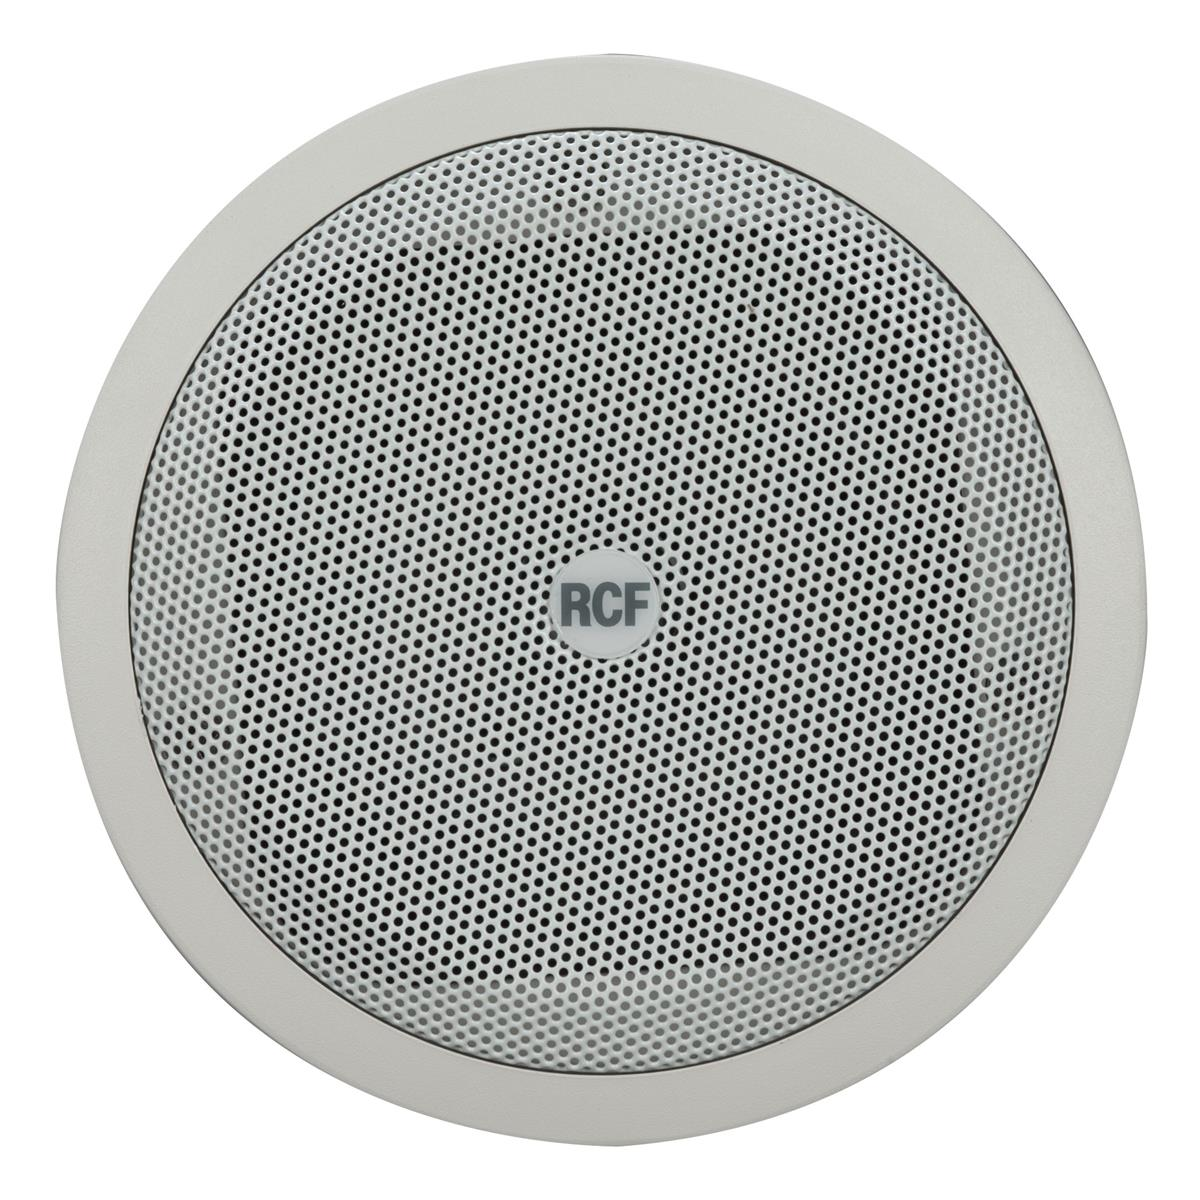 RCF 6in twin-cone flush mounting ceiling speaker, white, 6W,